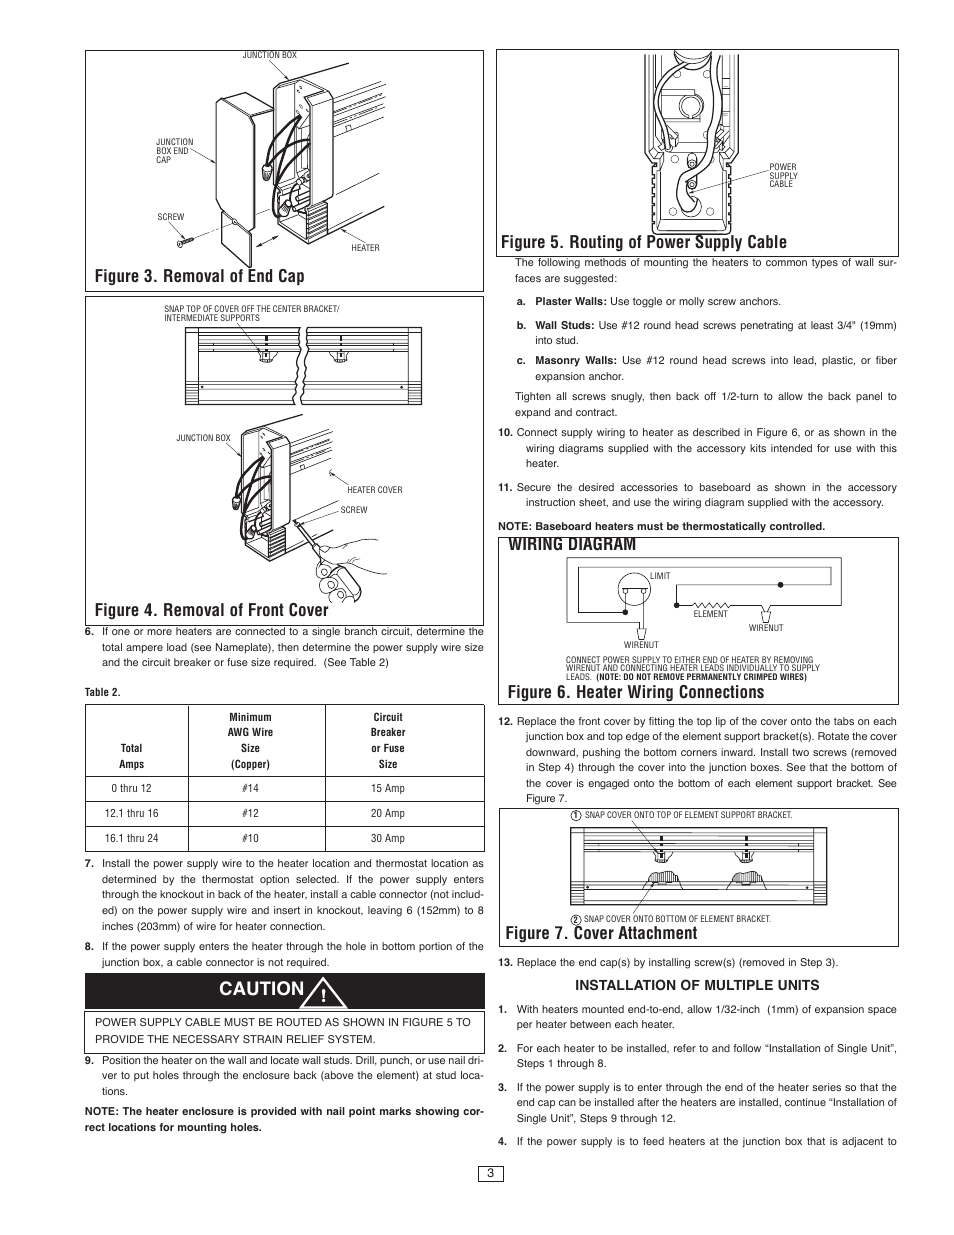 space heater wiring diagram caution  figure 4 removal of front cover  figure 3 removal of baldor space heater wiring diagram figure 4 removal of front cover